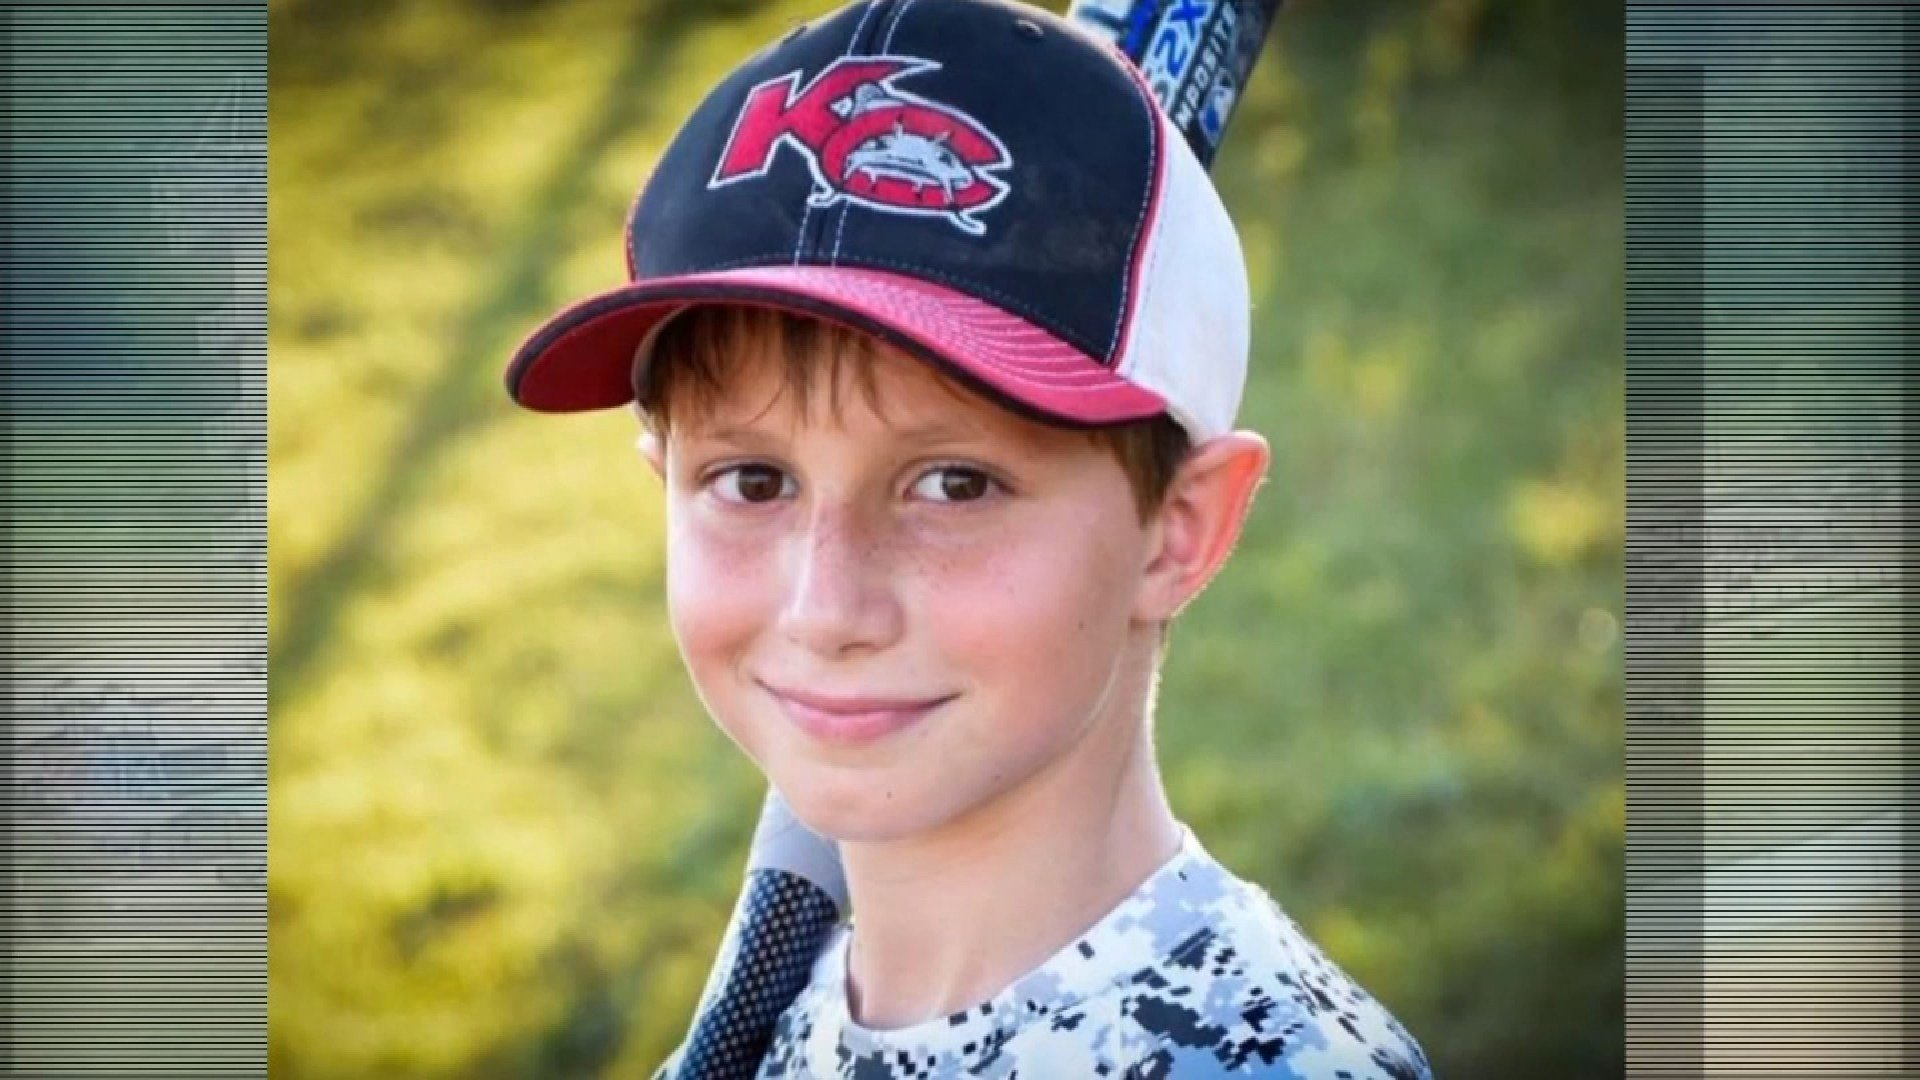 Caleb Schwab was killed in August of 2016 while going down the slide. (GoFundMe)